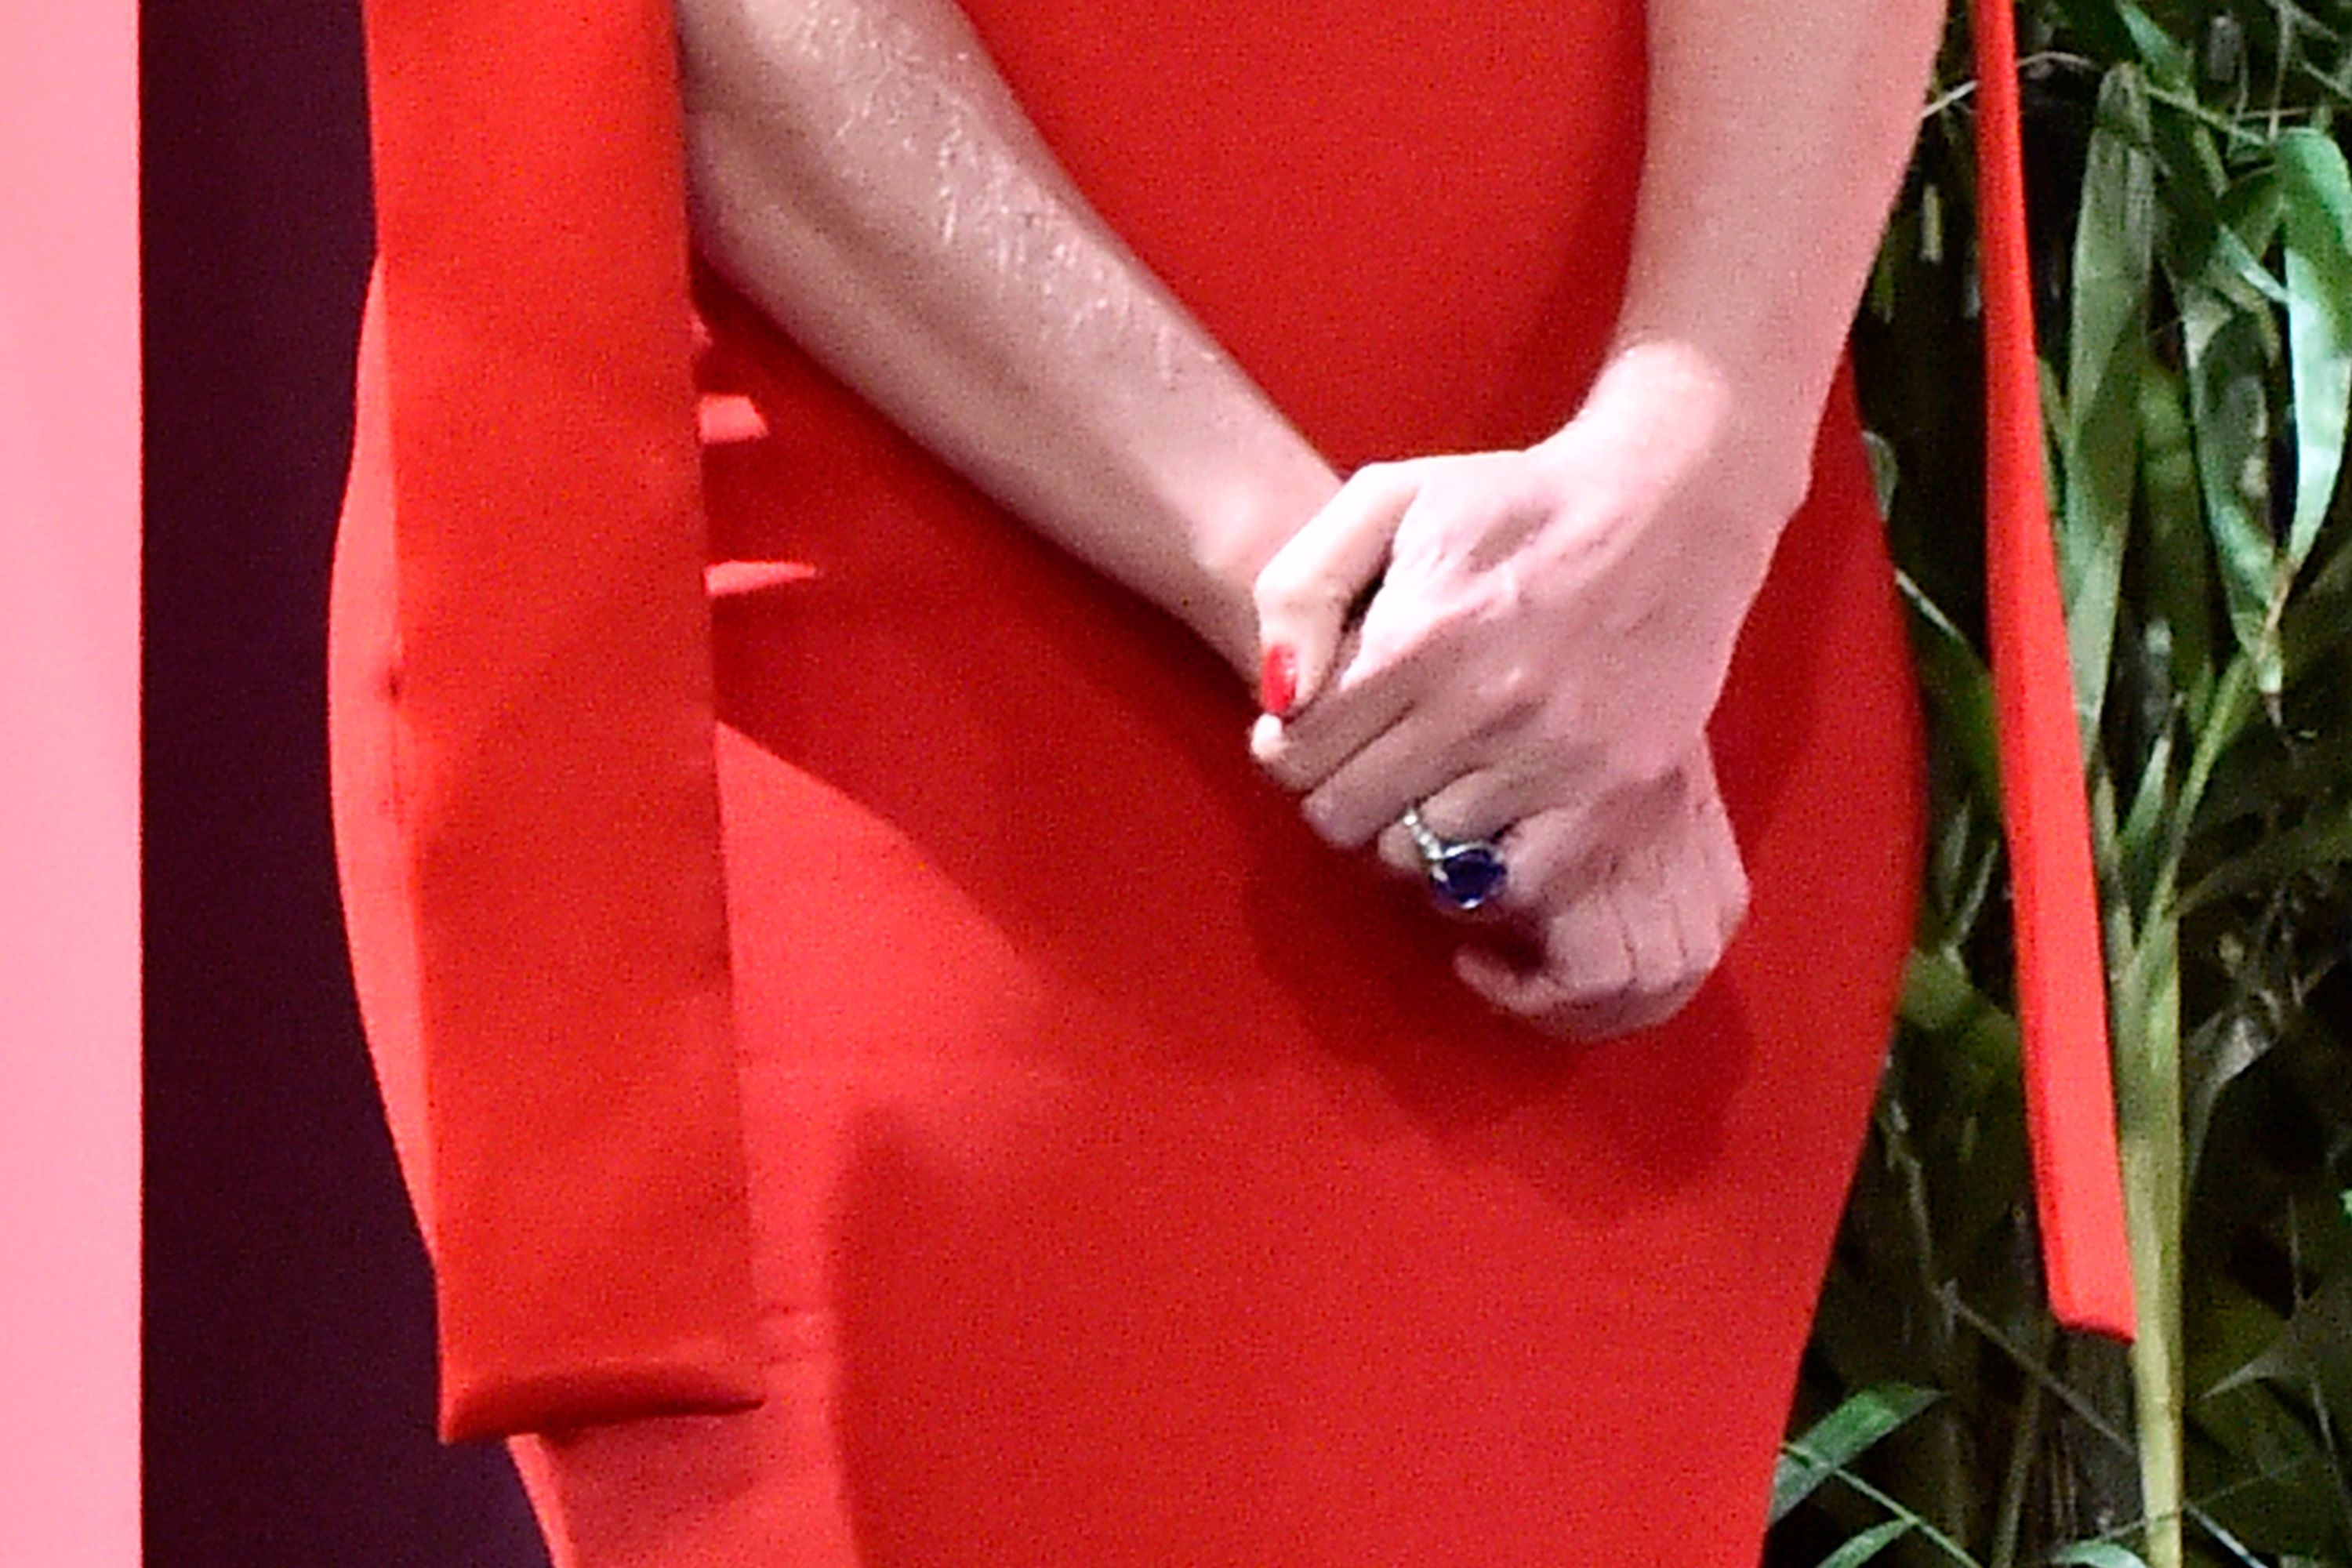 Gwyneth Paltrow engagement ring